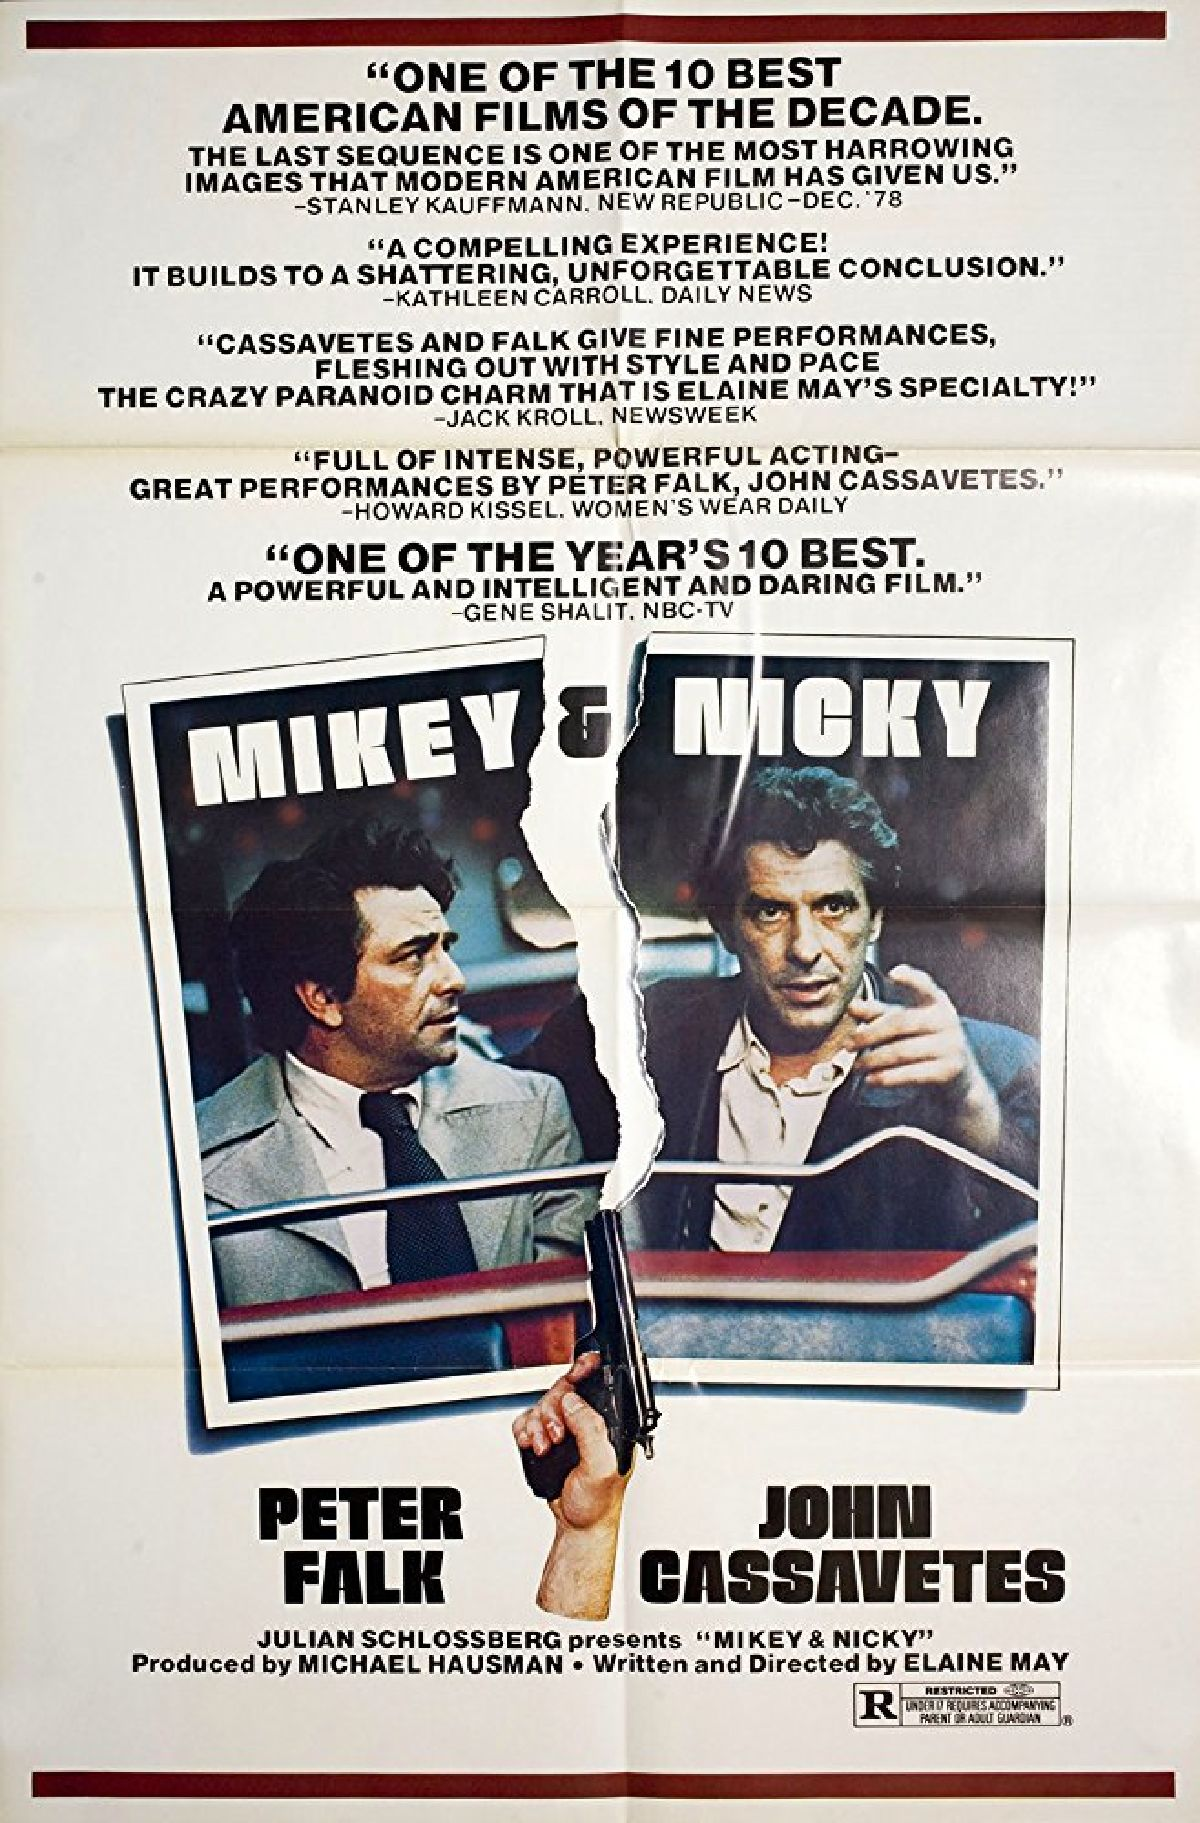 'Mikey And Nicky' movie poster